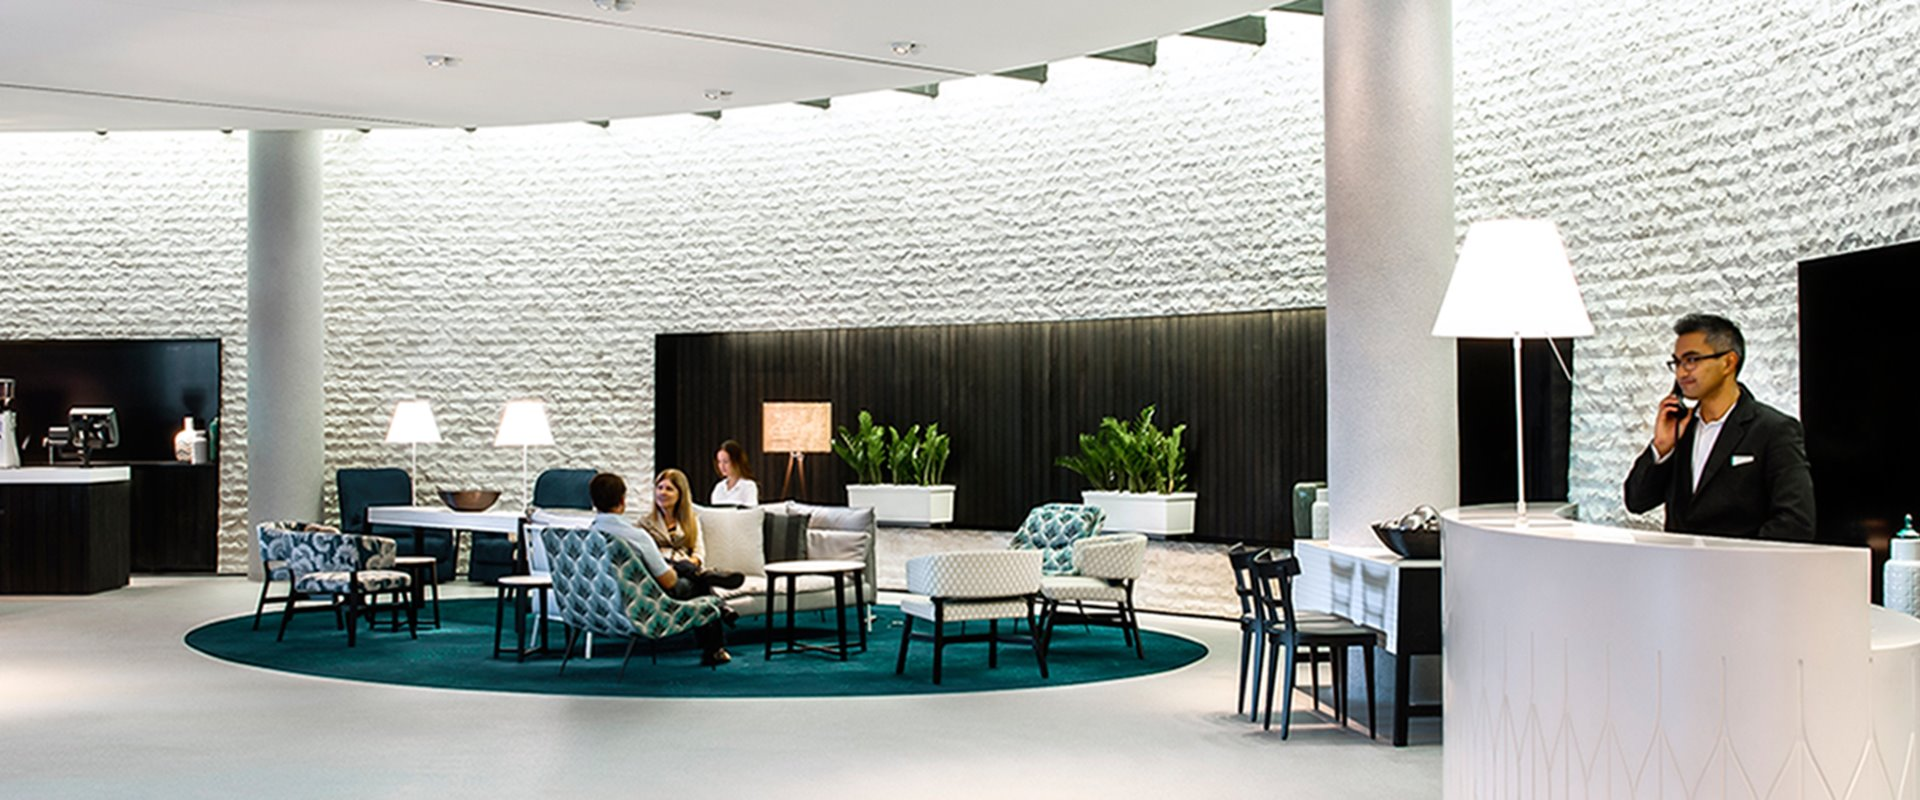 Parkroyal Darling Harbour | Conference Venues Sydney | Conference Venues New South Wales